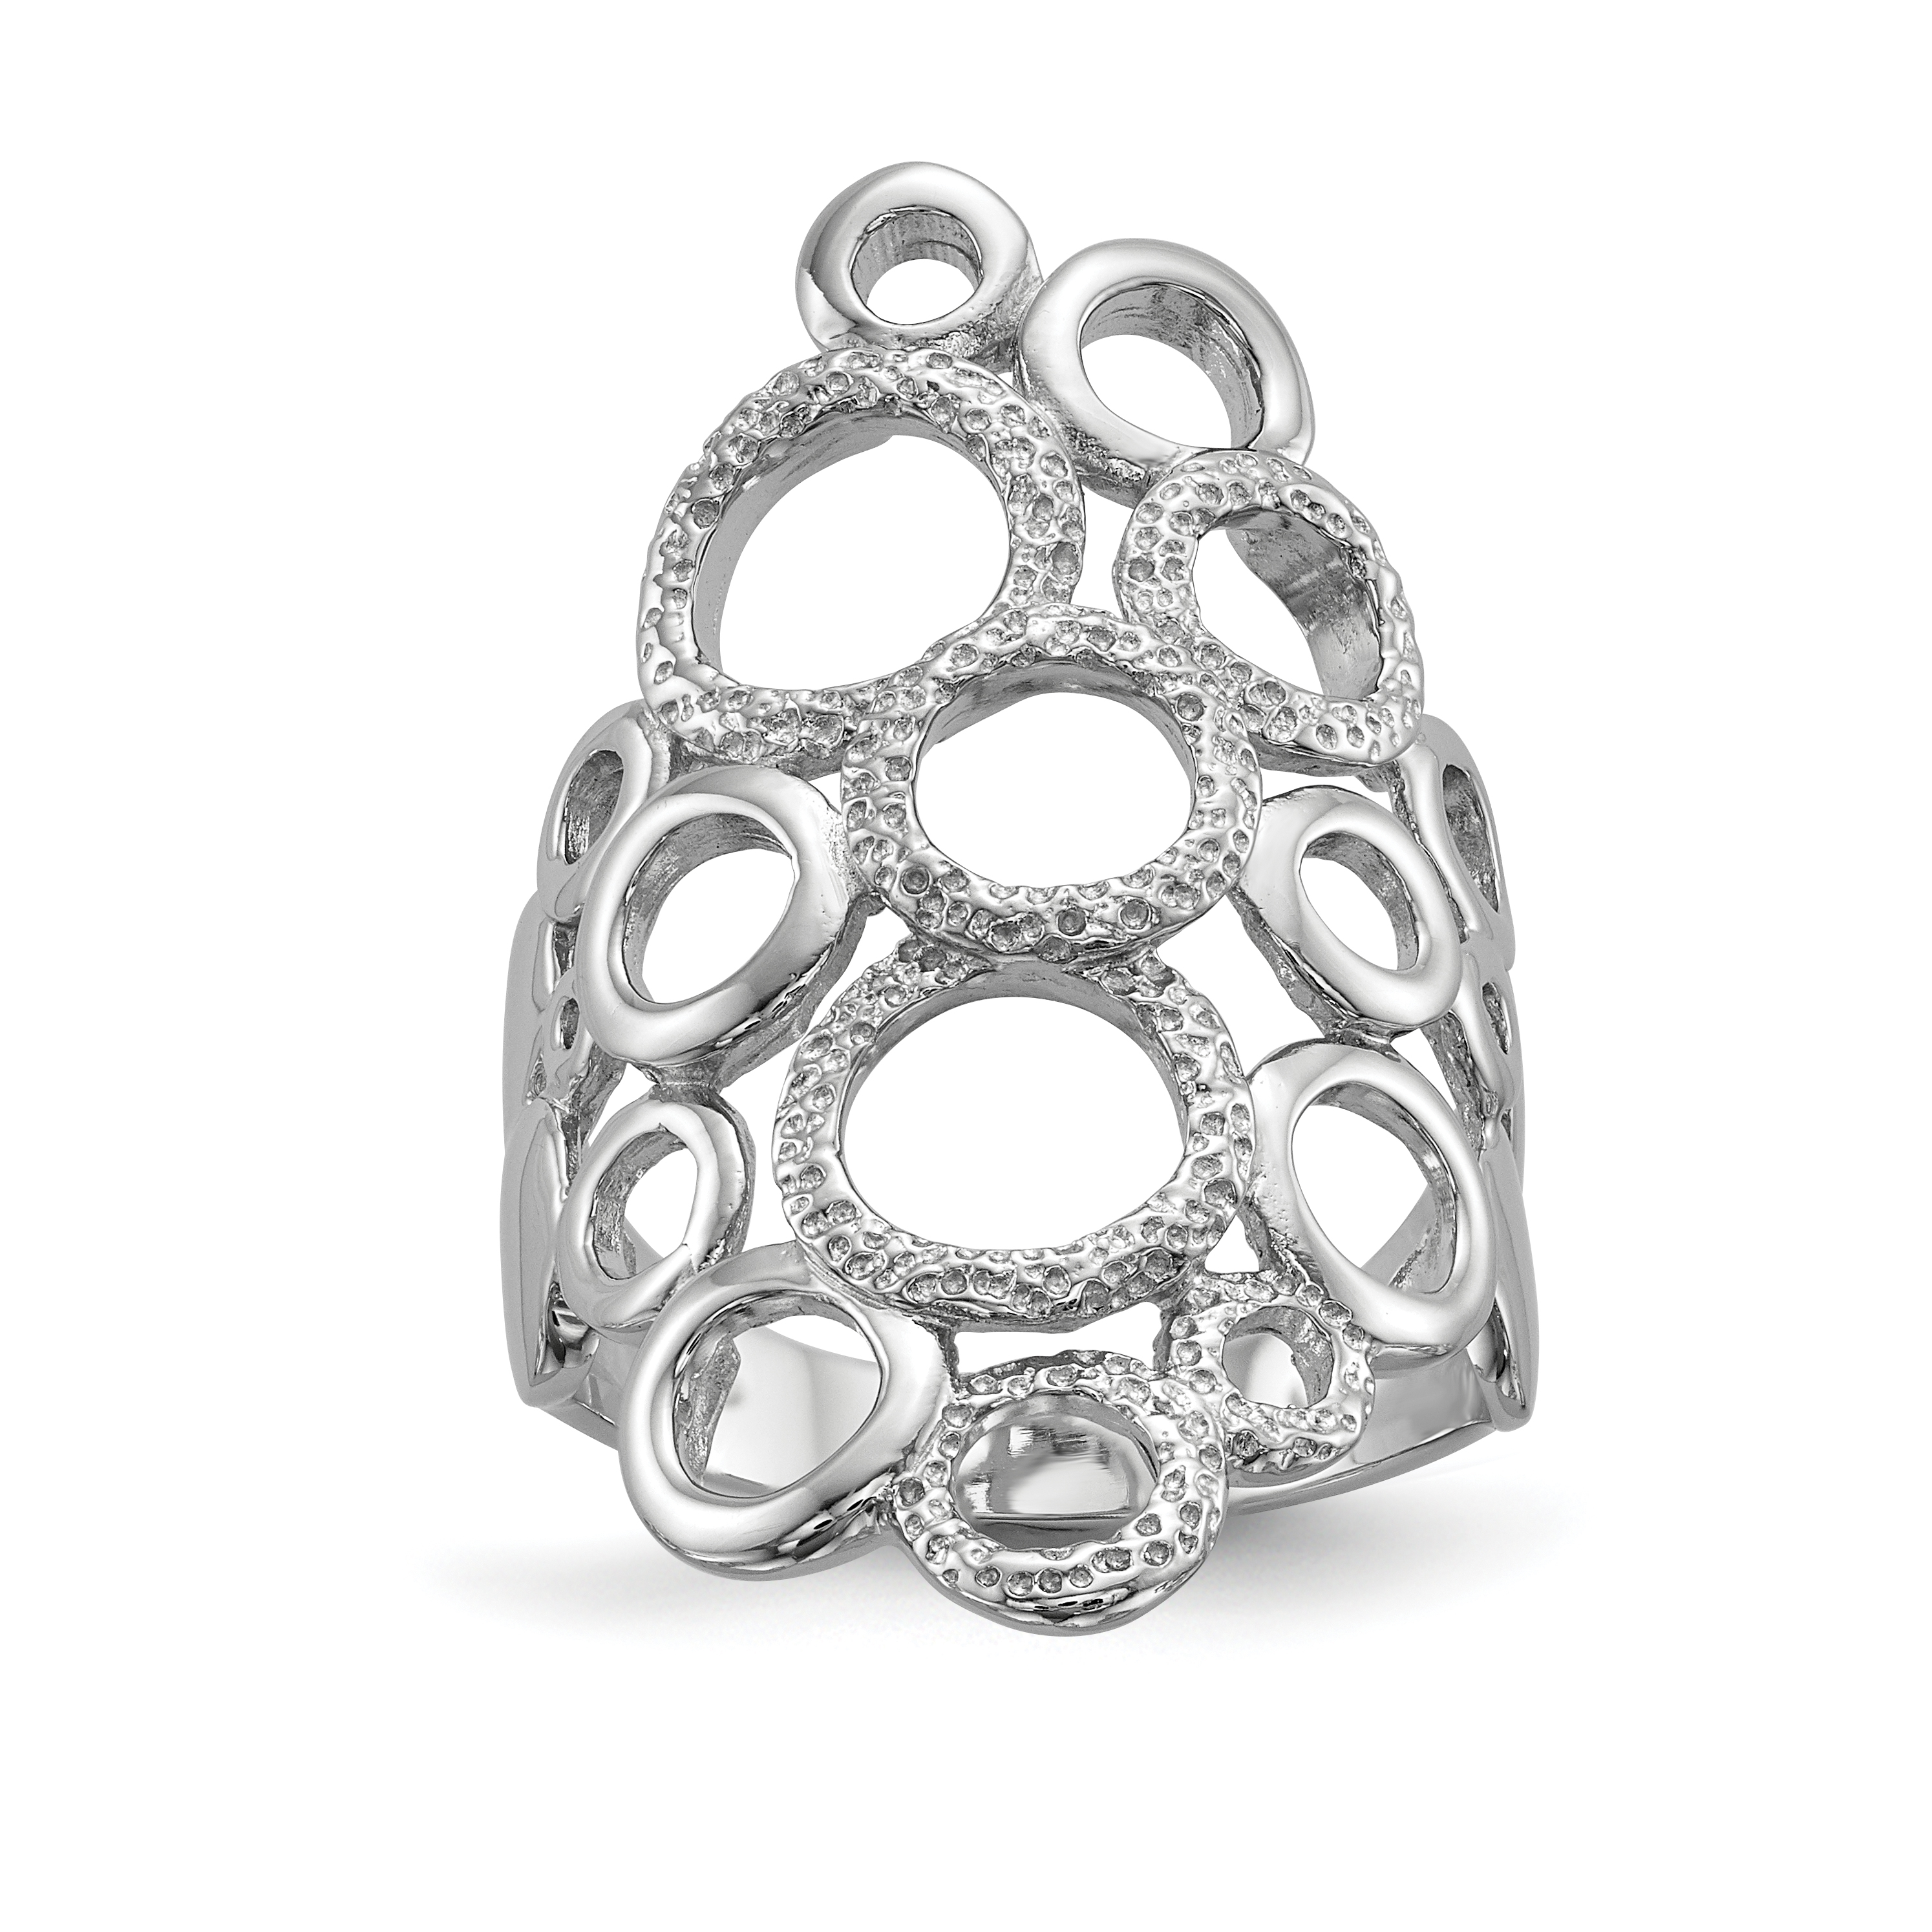 925 Sterling Silver Textured Circles Band Ring Size 7.00 Fine Jewelry Gifts For Women For Her - image 4 de 4